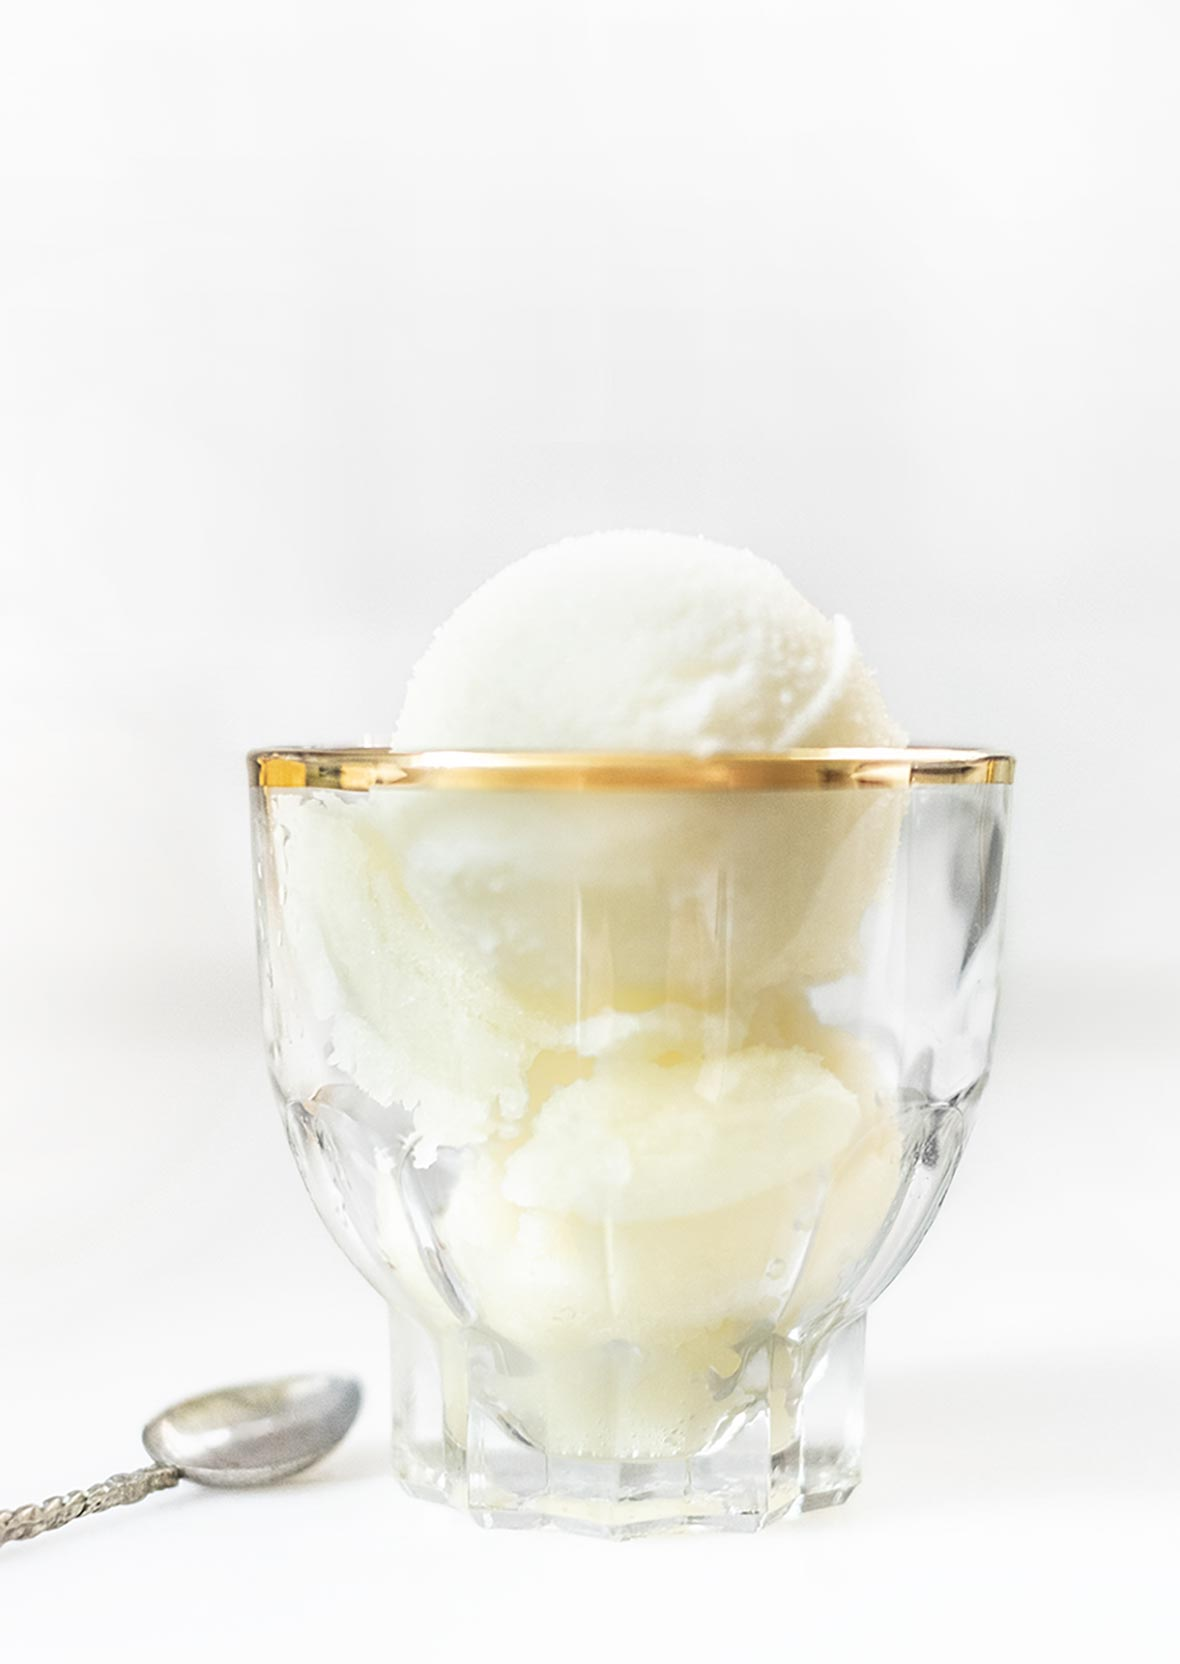 A small glass serving bowl with two scoops of tart lemon sorbet.